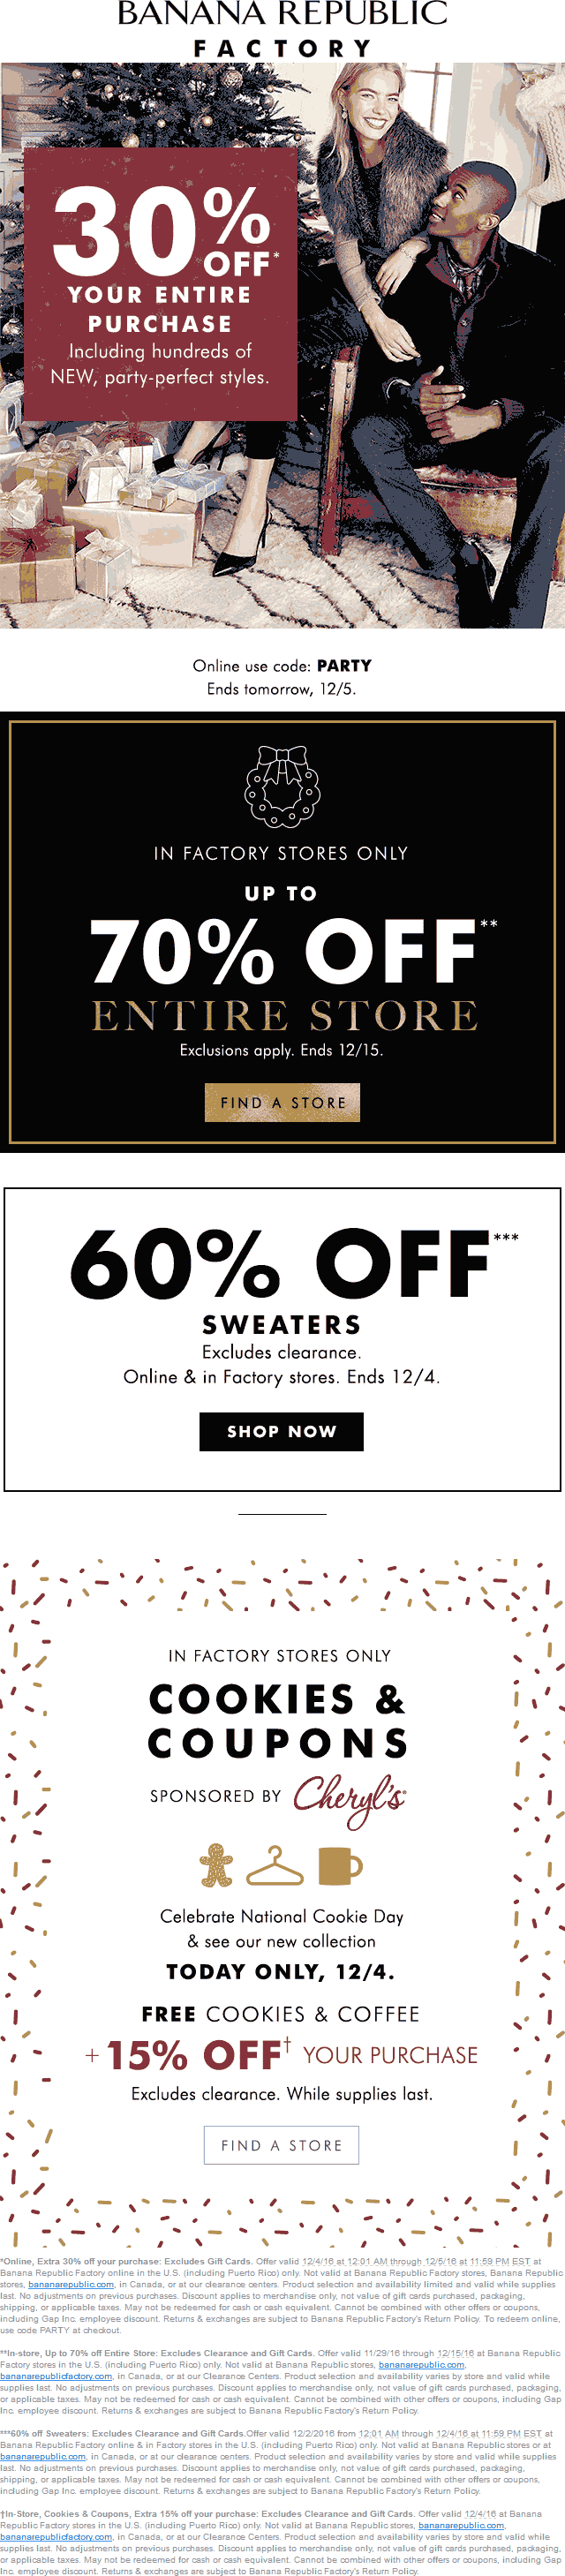 BananaRepublic.com Promo Coupon 30-70% off everything + another 15% Sunday at Banana Republic Factory, or online via promo code PARTY